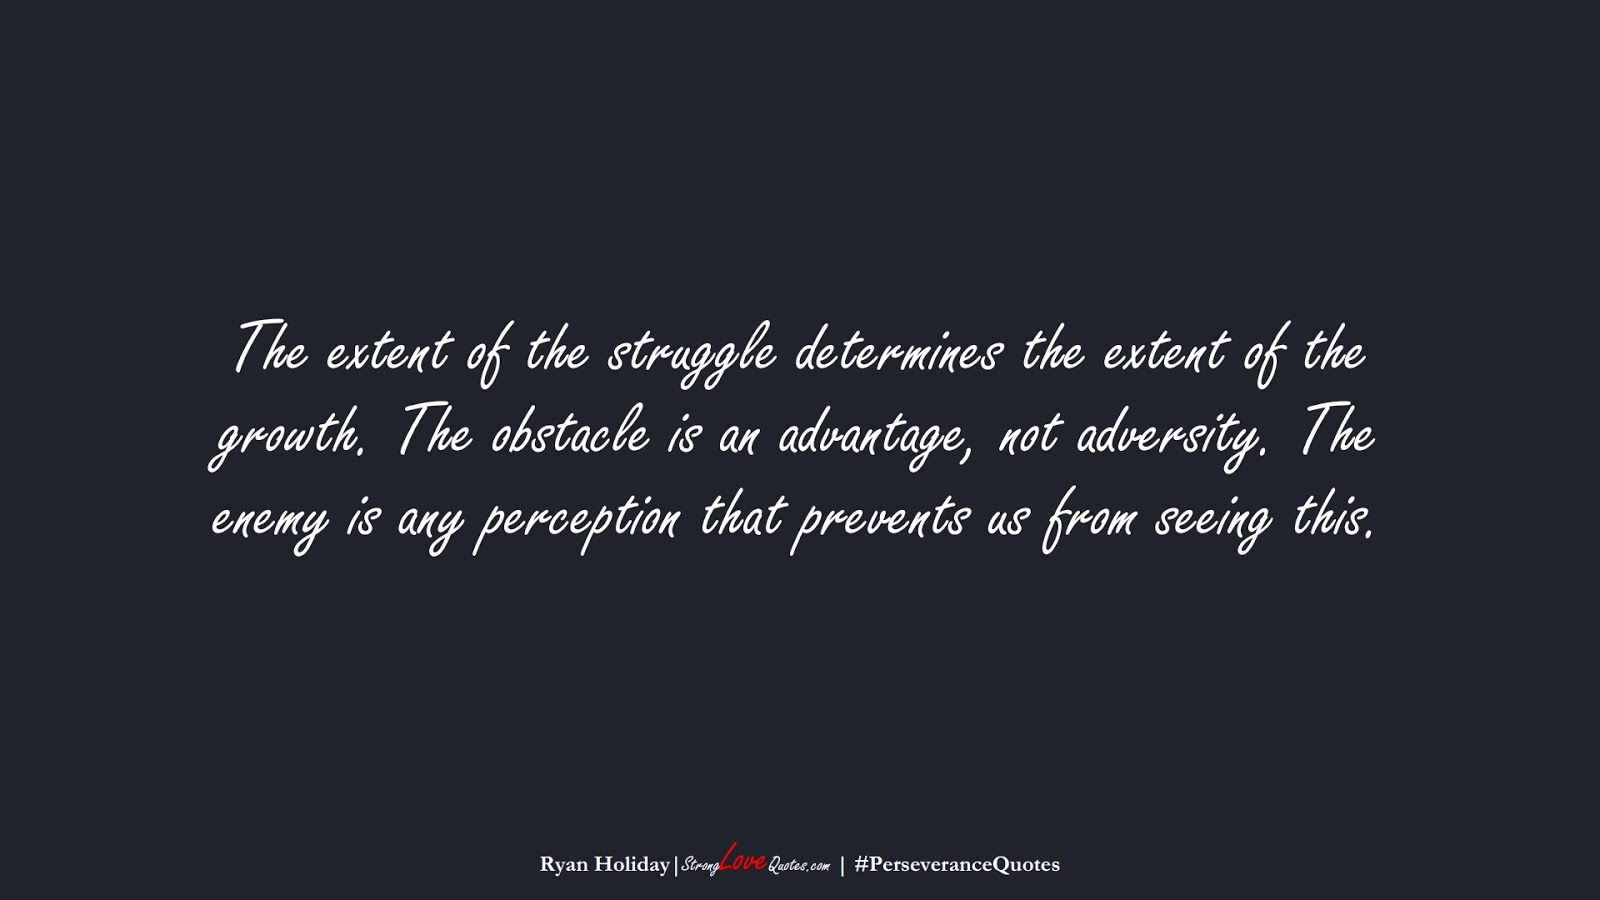 The extent of the struggle determines the extent of the growth. The obstacle is an advantage, not adversity. The enemy is any perception that prevents us from seeing this. (Ryan Holiday);  #PerseveranceQuotes